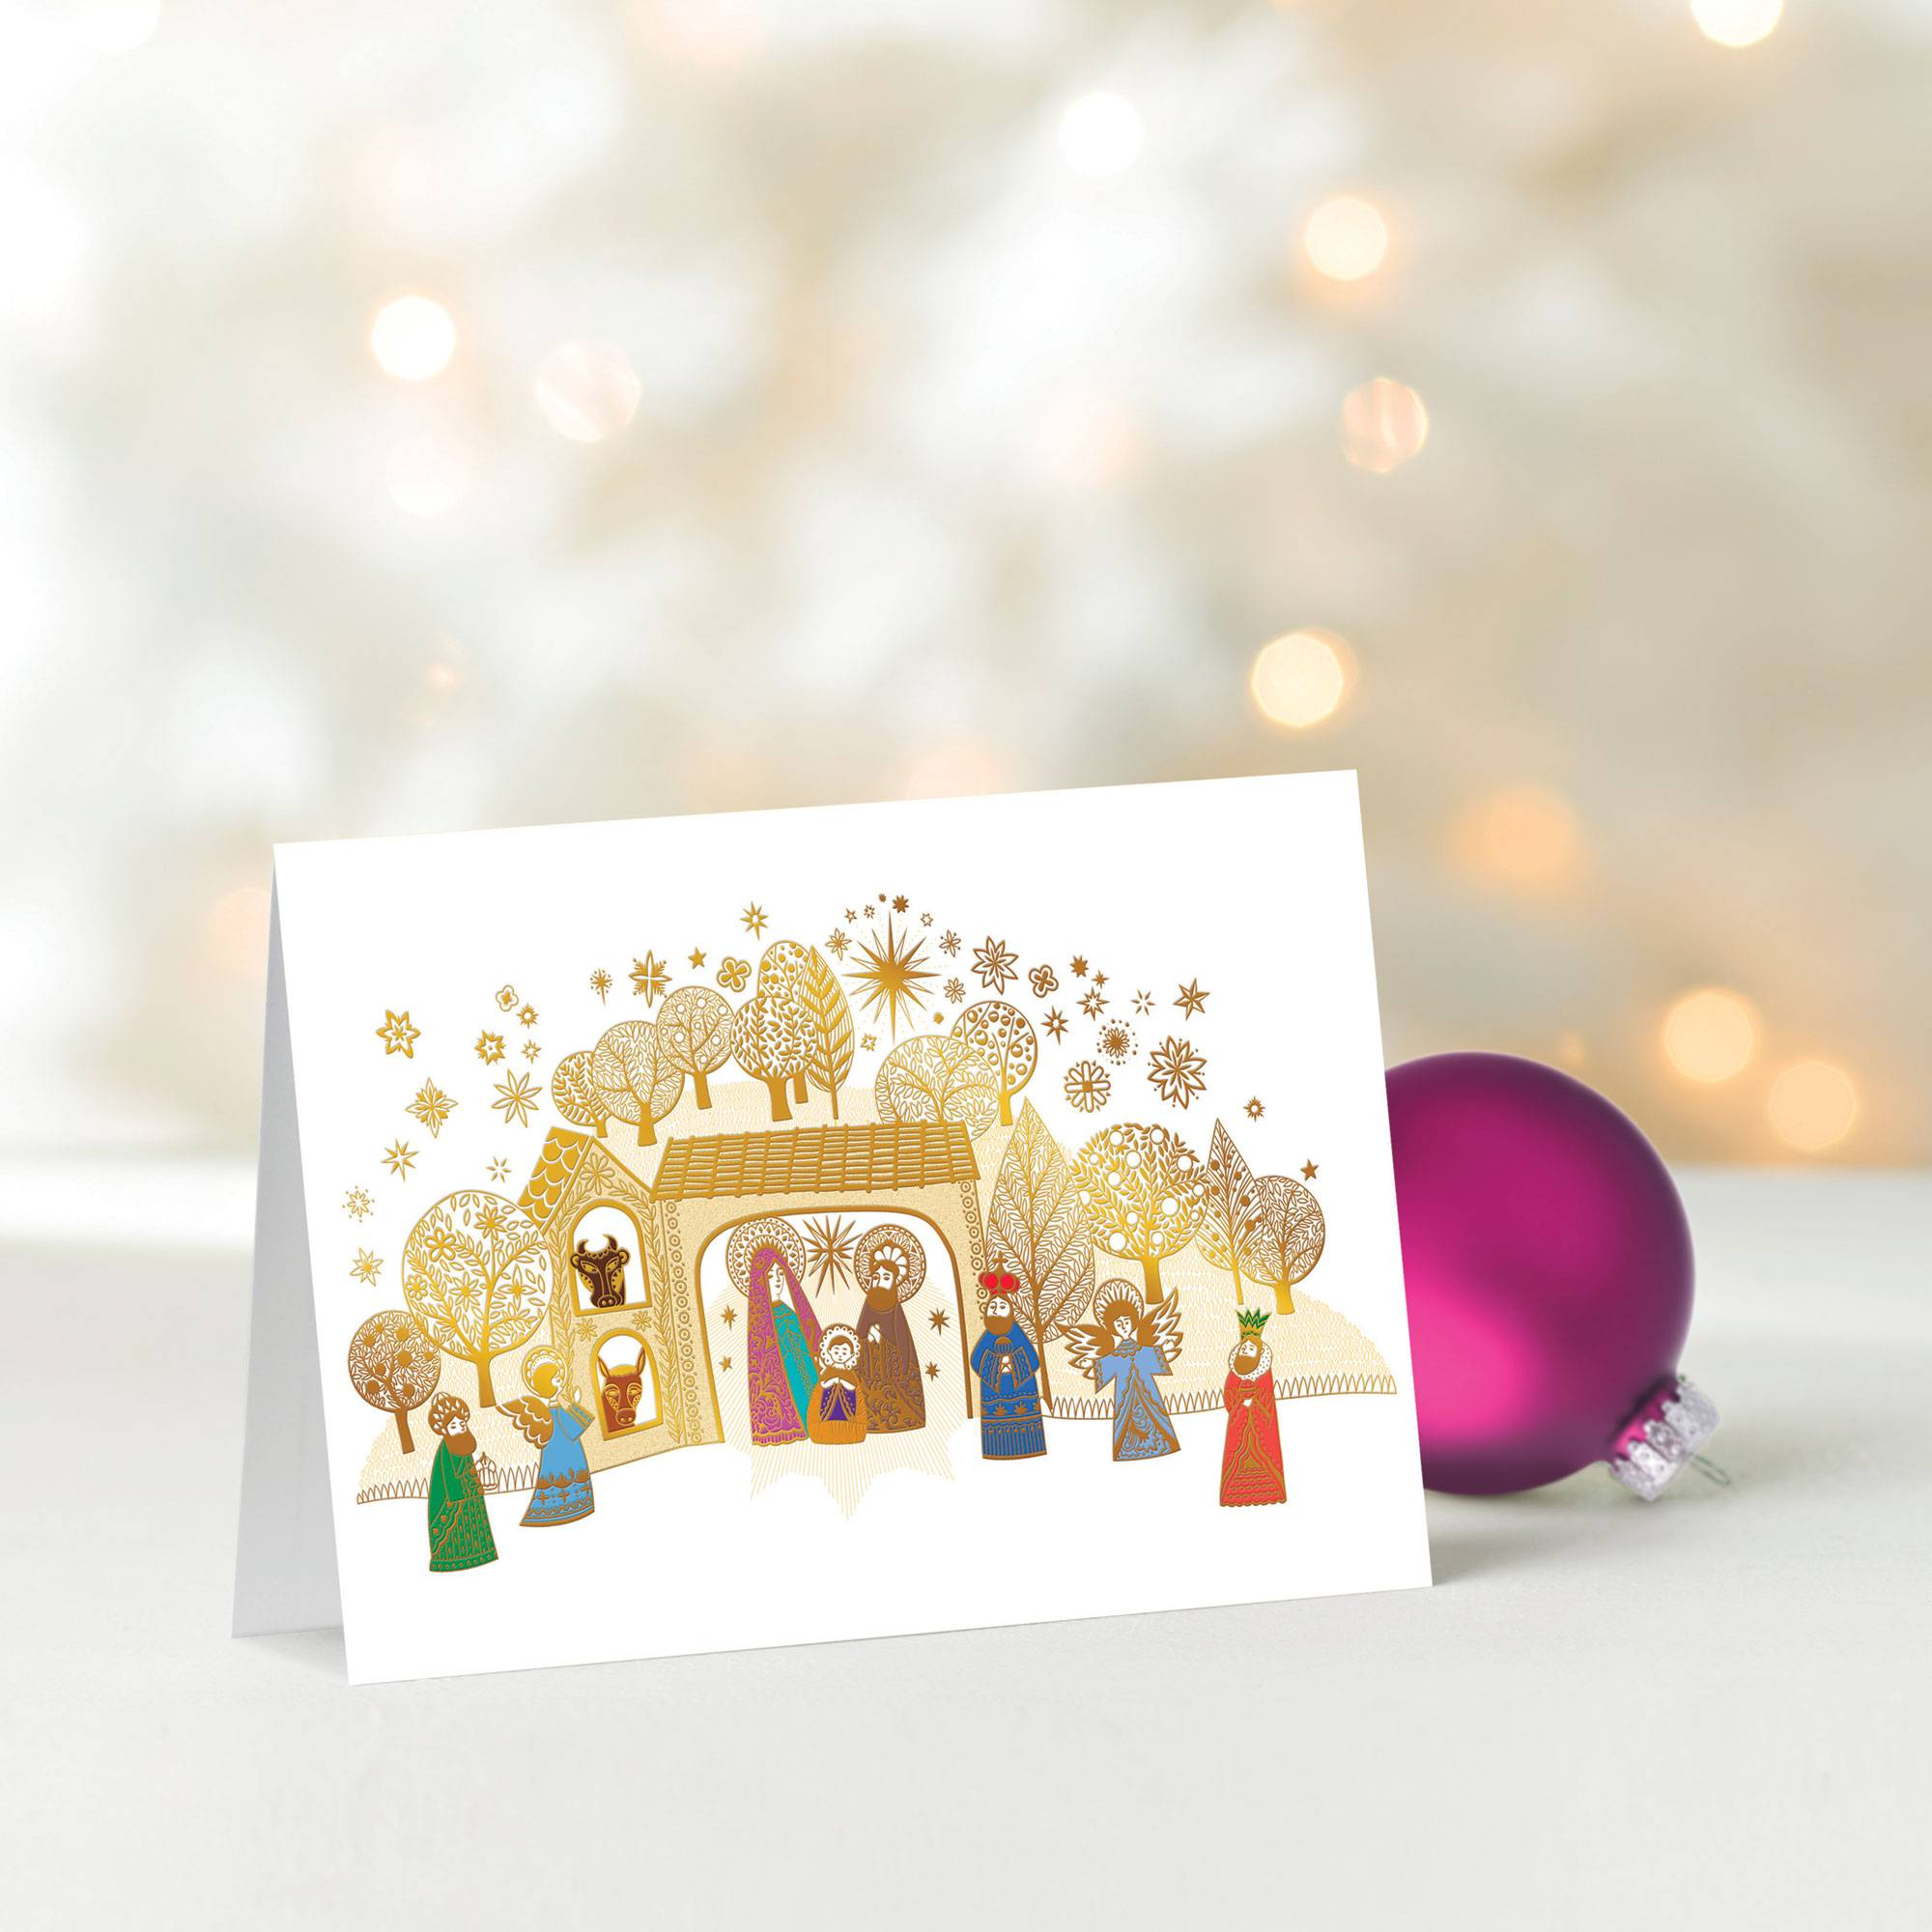 unicef holiday cards golden nativity set of 12 unicef holiday